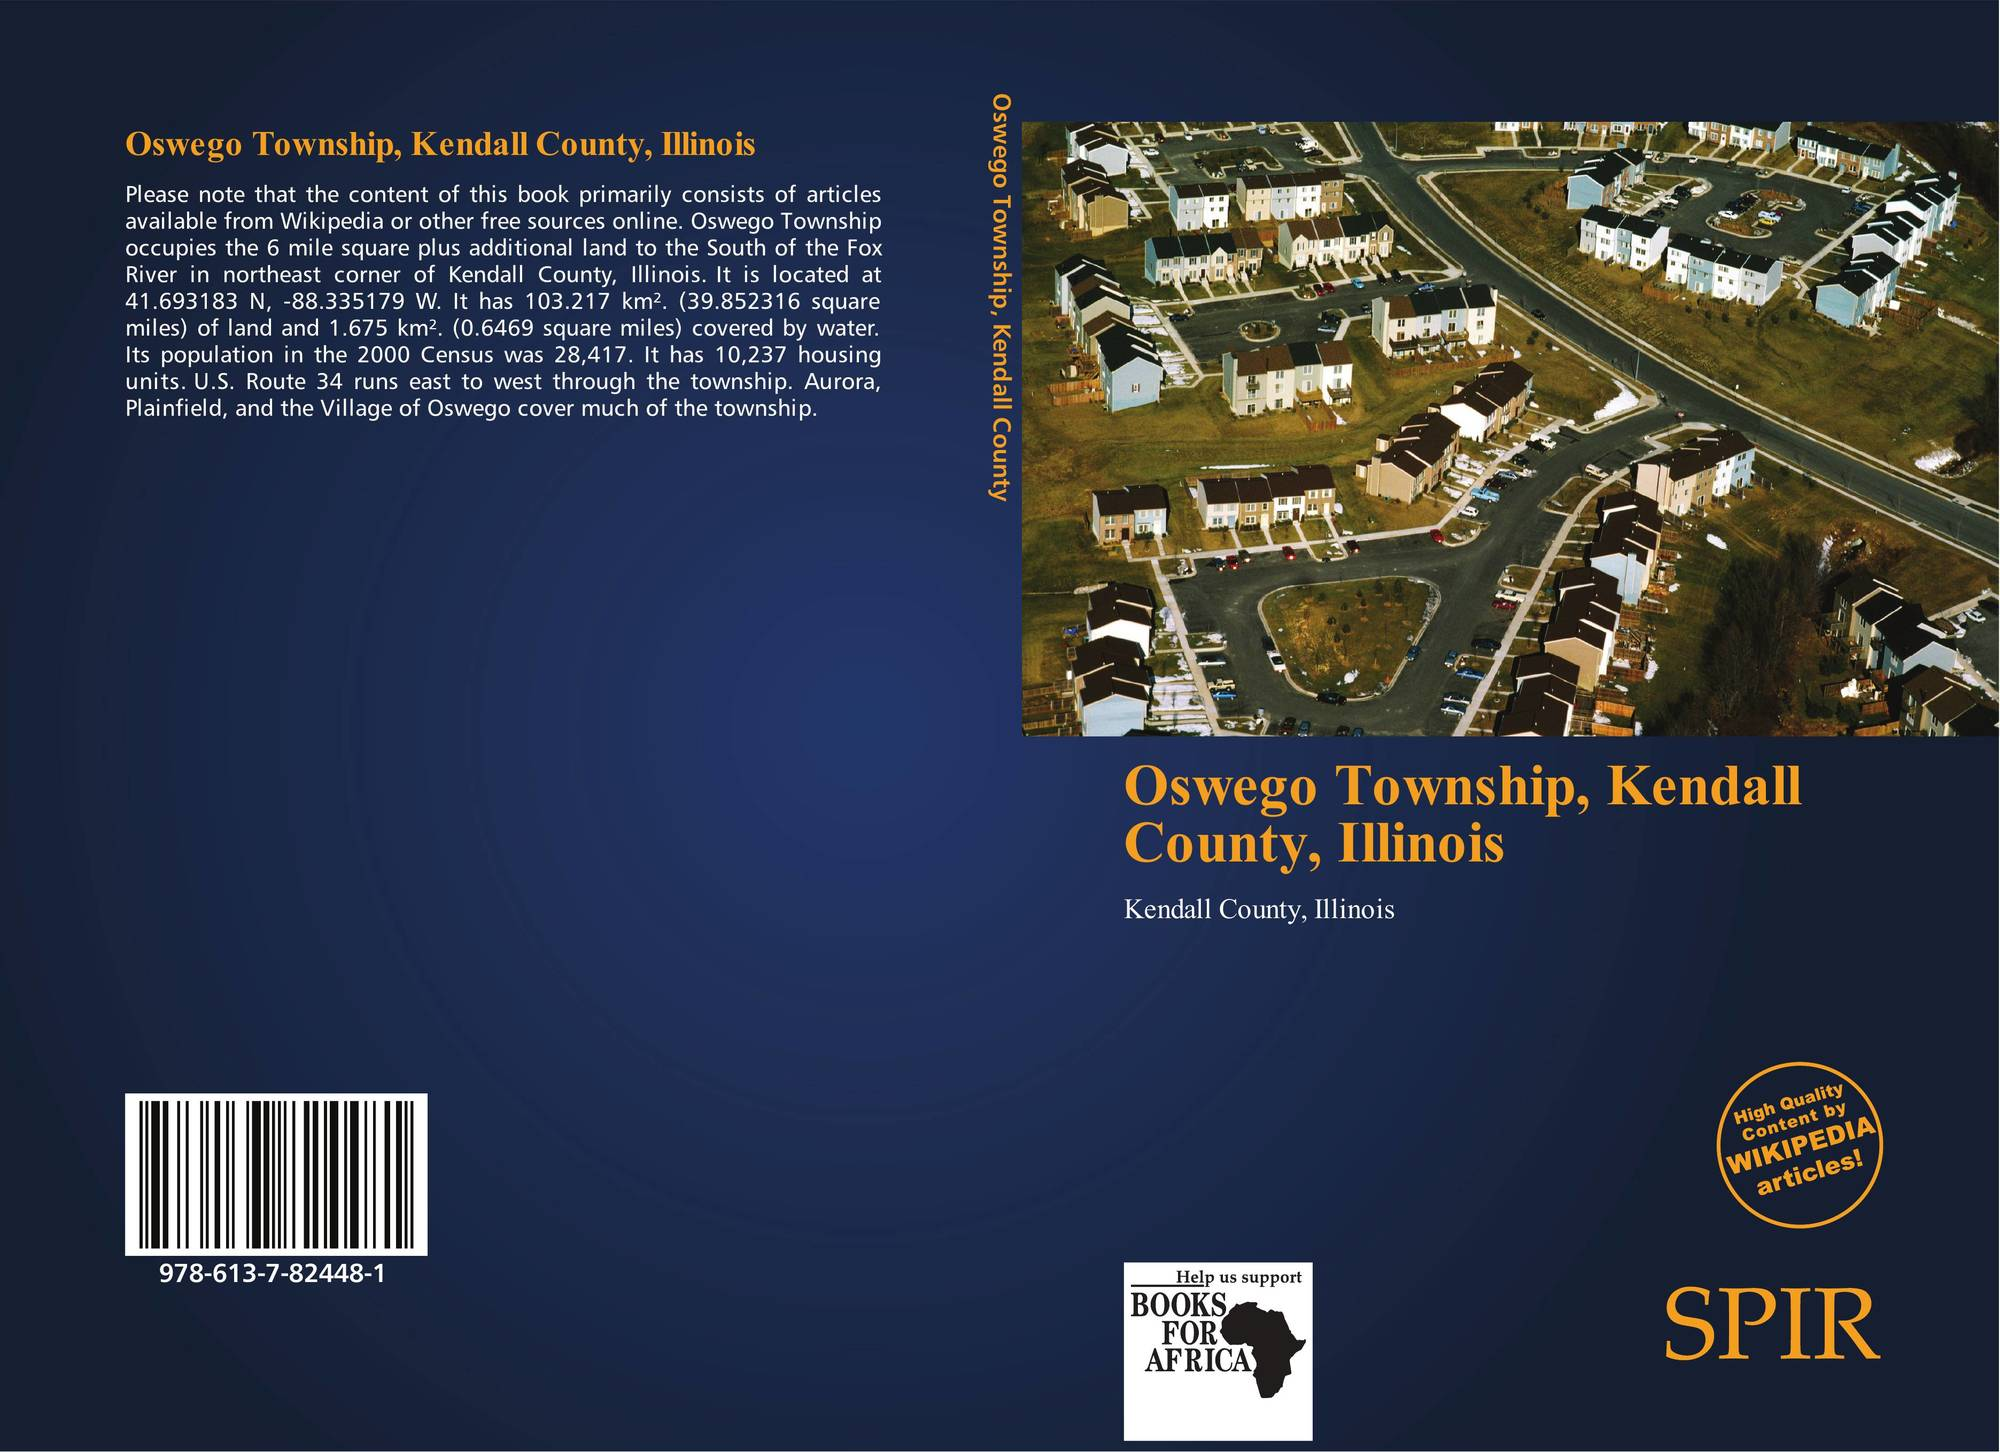 Illinois kendall county oswego - Bookcover Of Oswego Township Kendall County Illinois